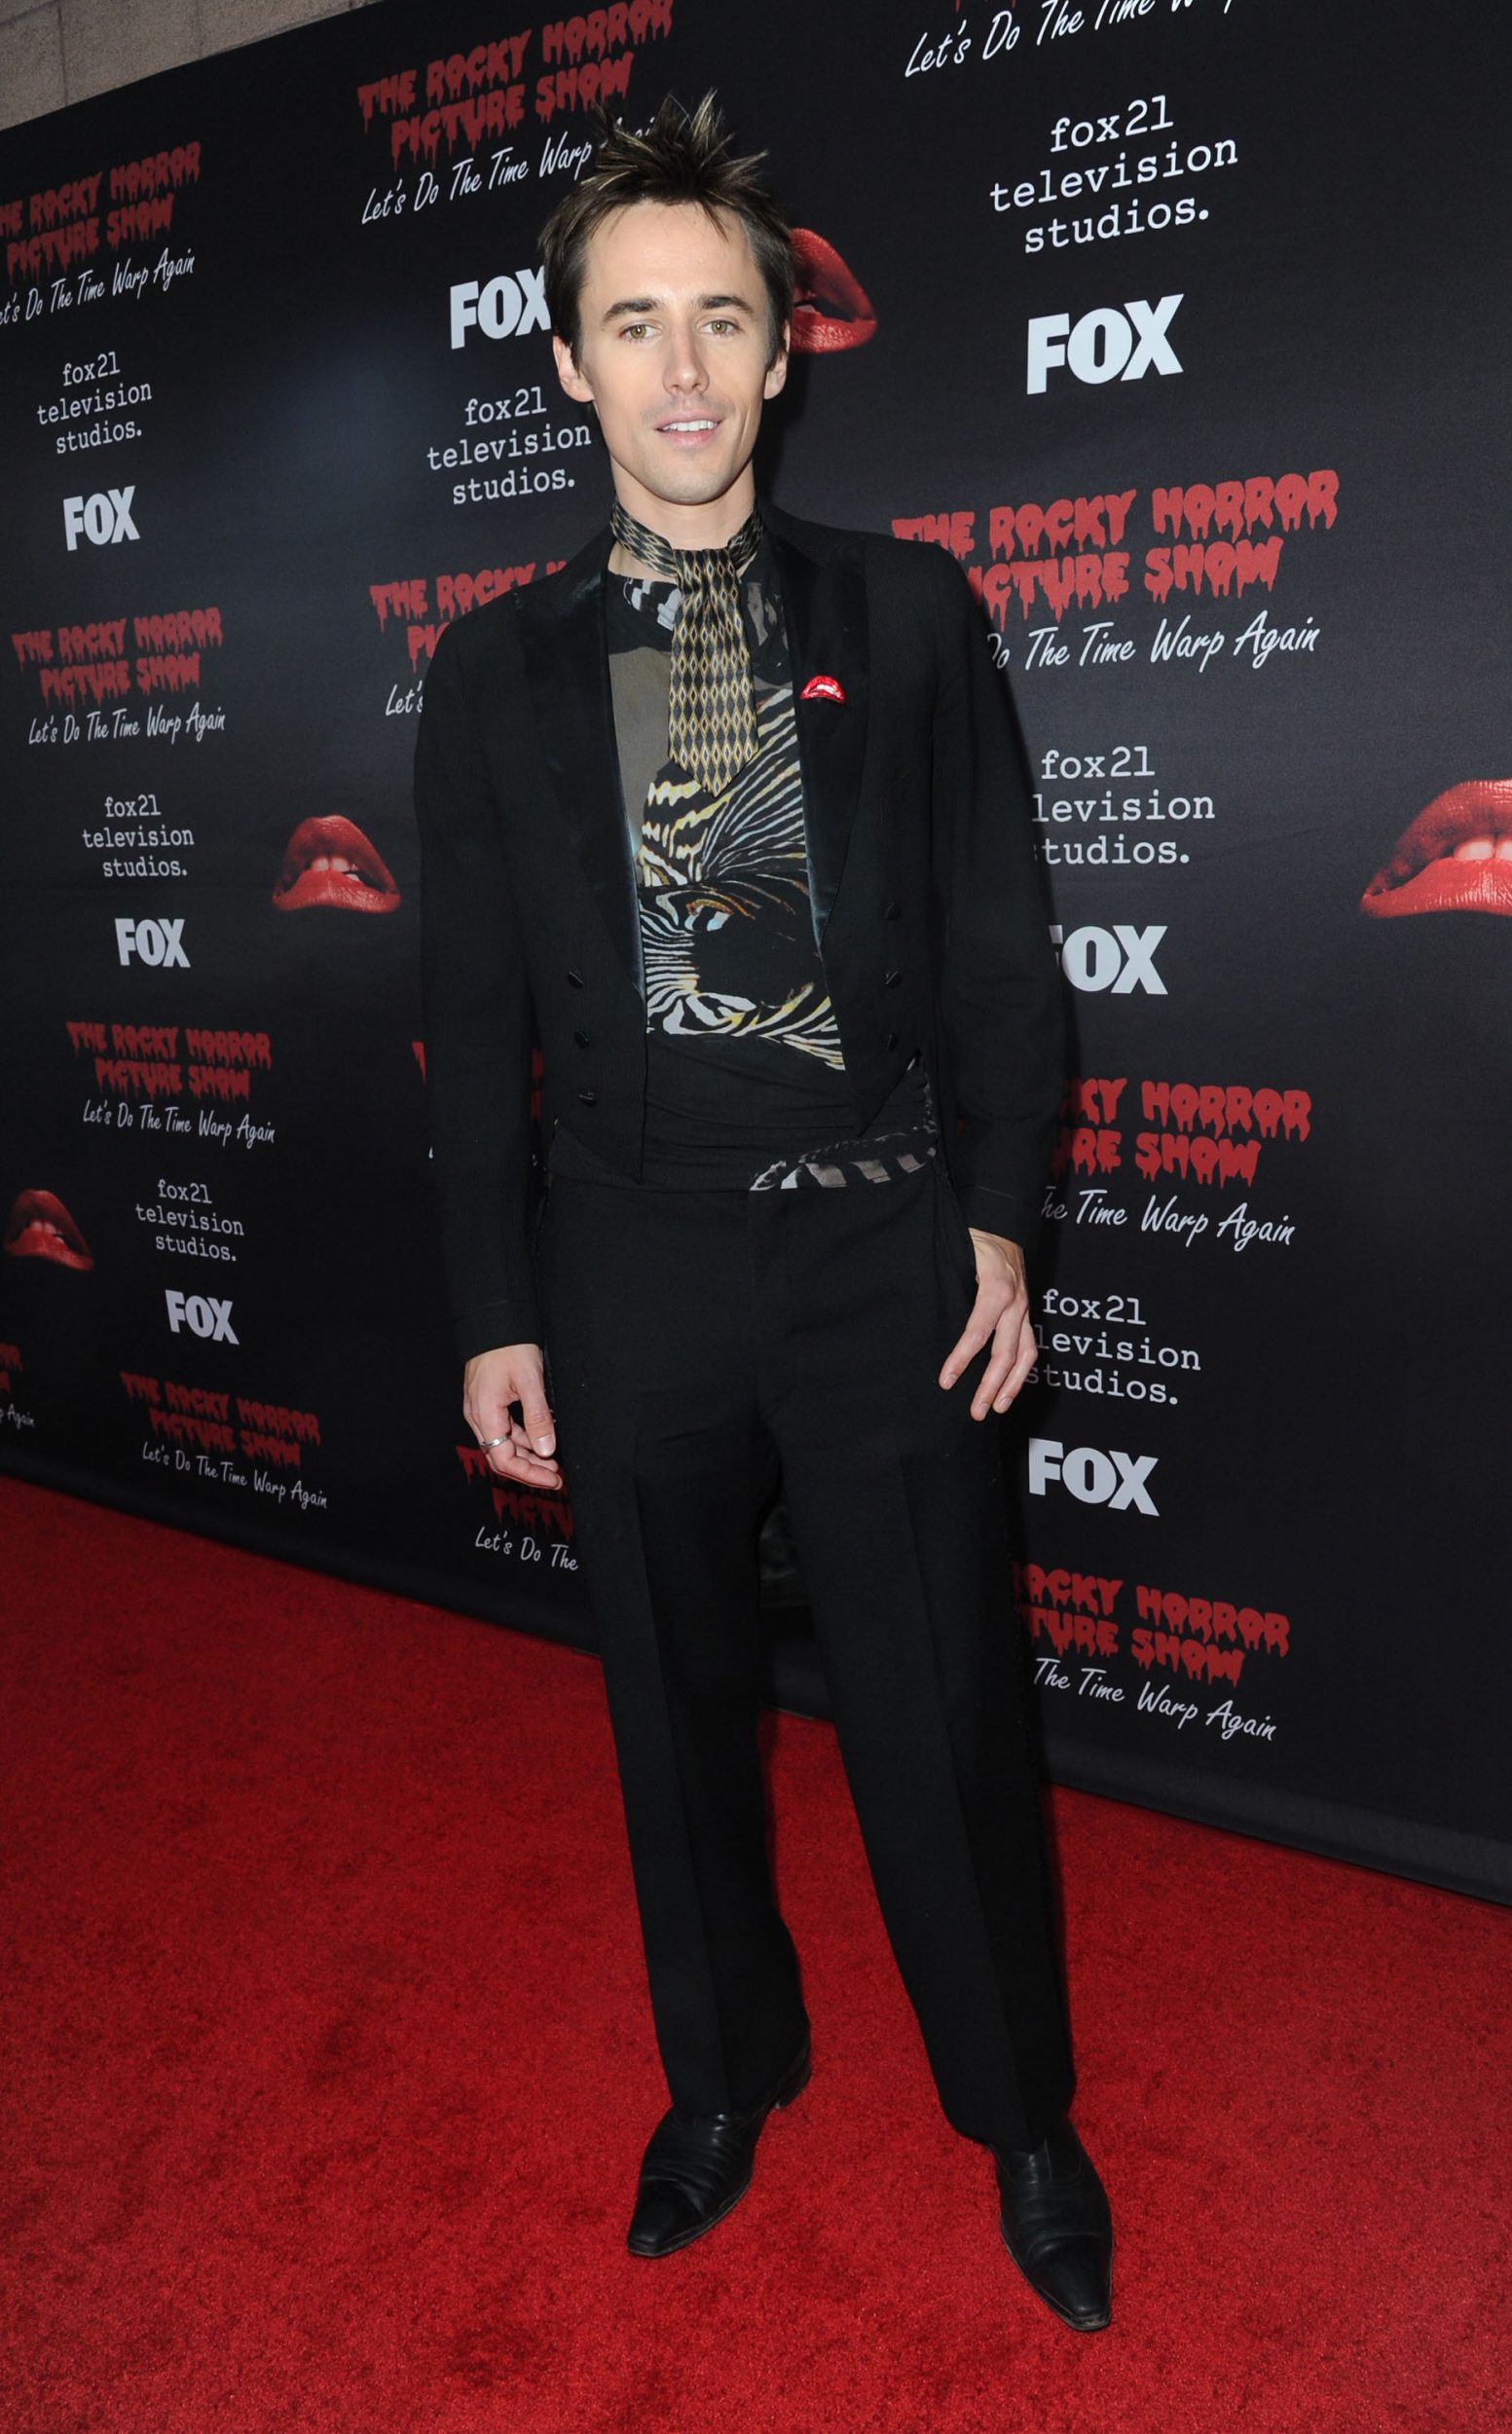 THE ROCKY HORROR PICTURE SHOW: Let's Do The Time Warp Again (and Transylvanians!): Cast member Reeve Carney arrives at THE ROCKY HORROR PICTURE SHOW: Let's Do The Time Warp Again (and Transylvanians!) premiere party red carpet at The Roxy on Thursday, Oct. 13, in Los Angeles, CA. THE ROCKY HORROR PICTURE SHOW: Let's Do The Time Warp Again (And Transylvanians!) premieres Thursday, Oct. 20 (8:00-10:00 PM ET/PT) on FOX. © 2016 FOX BROADCASTING CR: Richard Shotwell/FOX